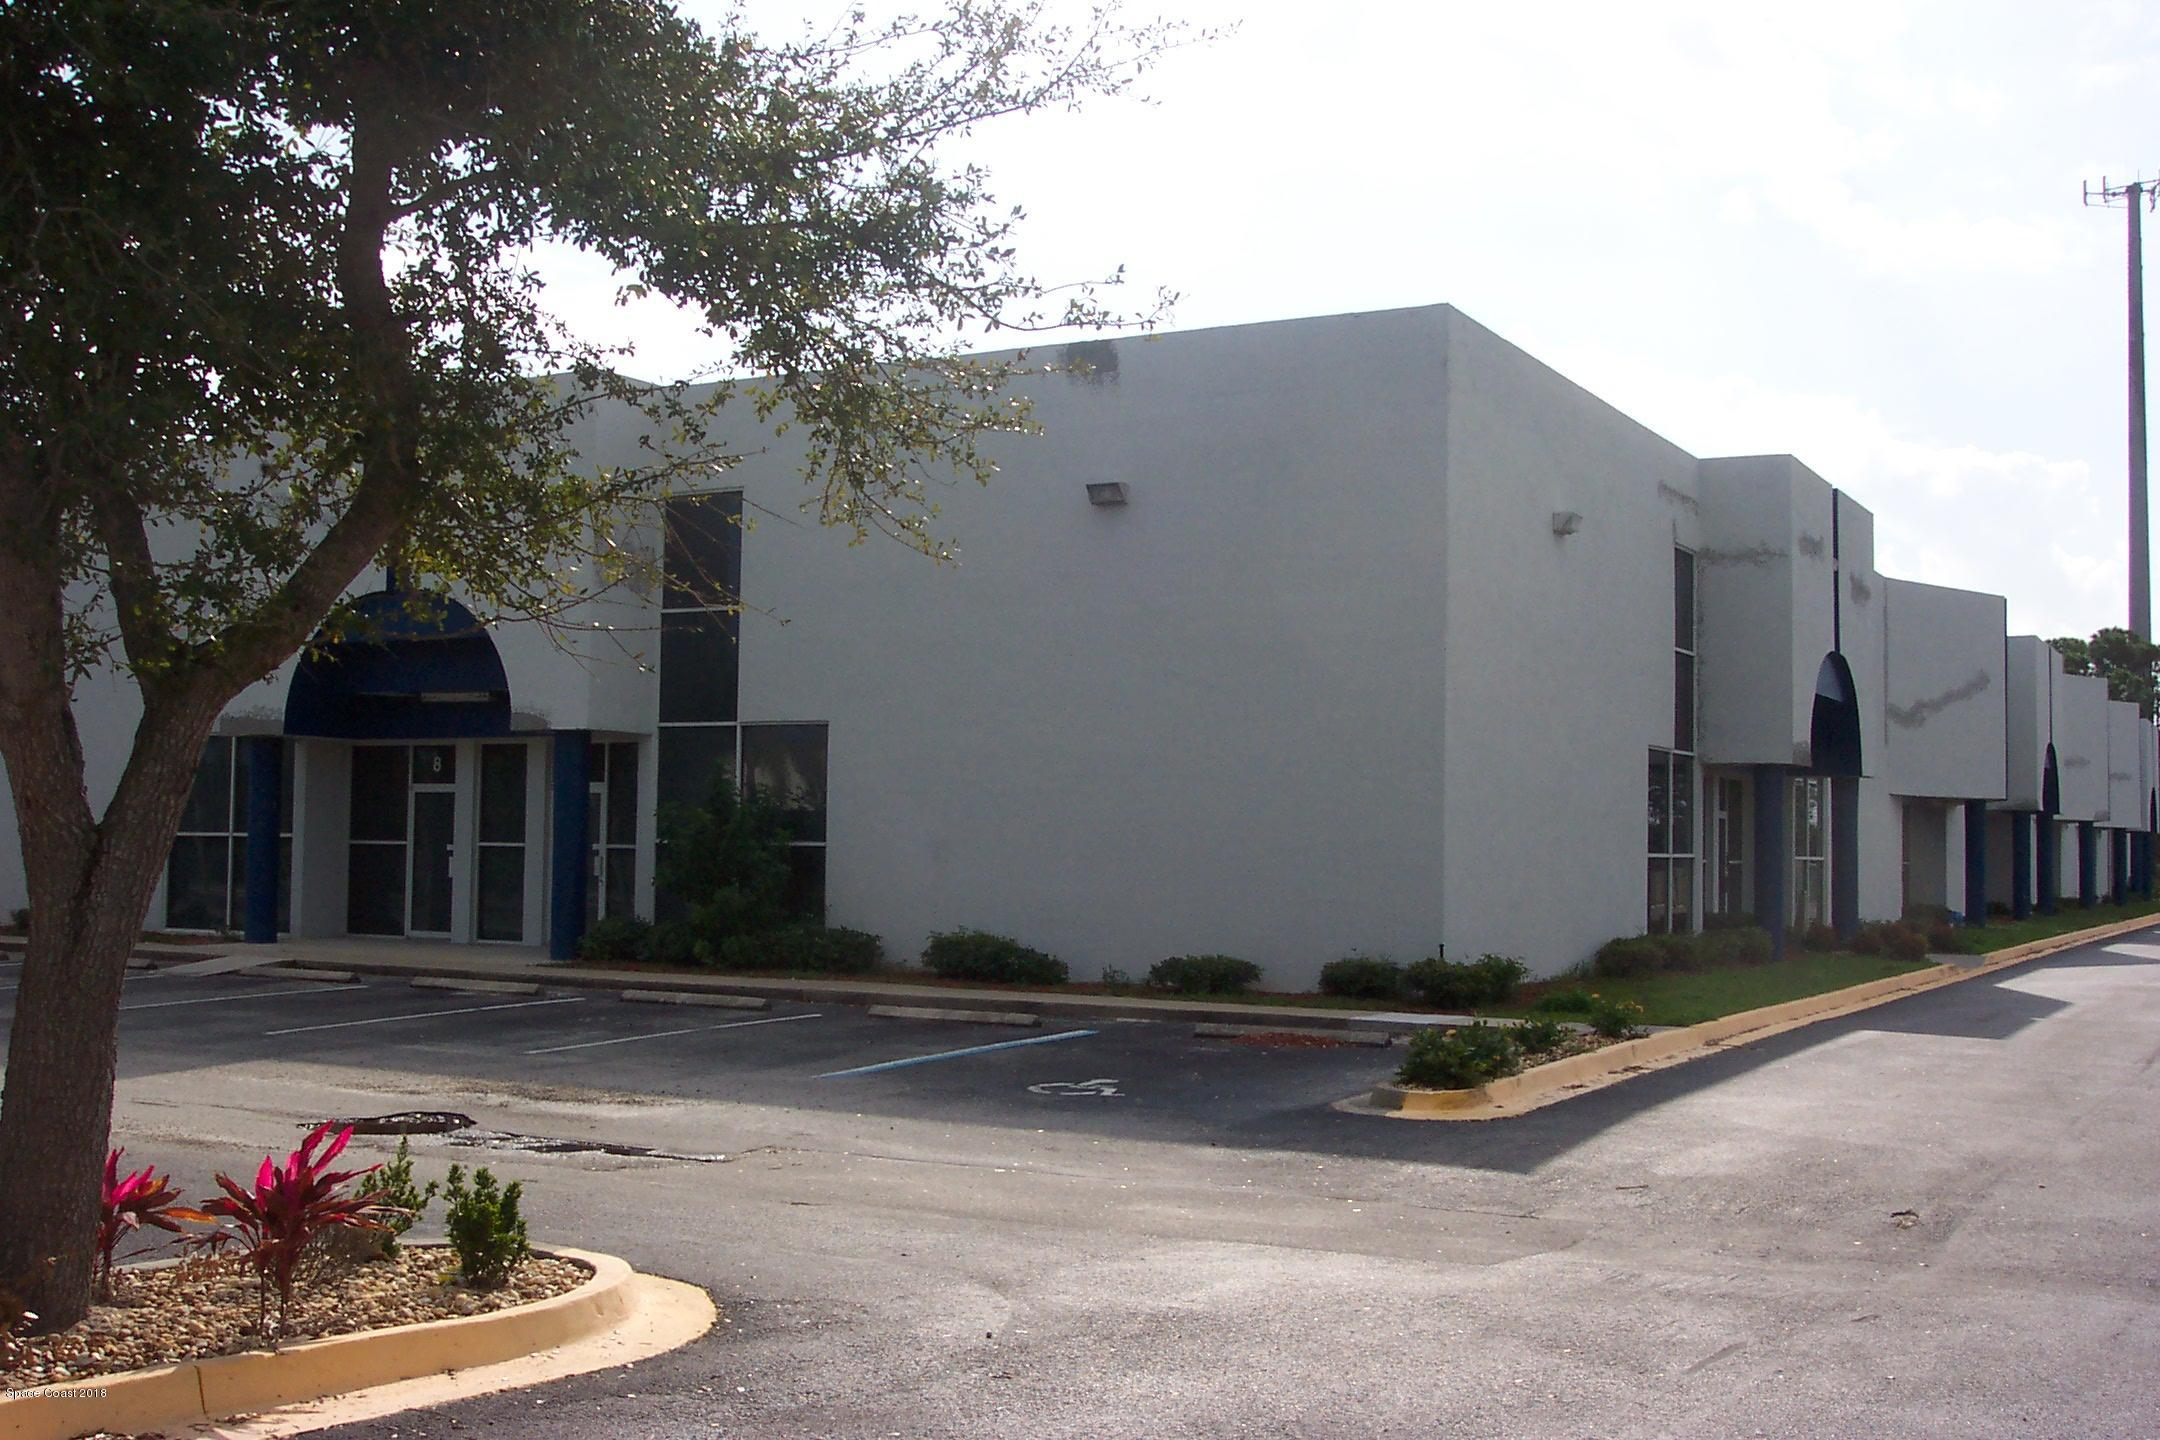 Commercial for Sale at 2300 Commerce Park Drive 2300 Commerce Park Drive Palm Bay, Florida 32905 United States